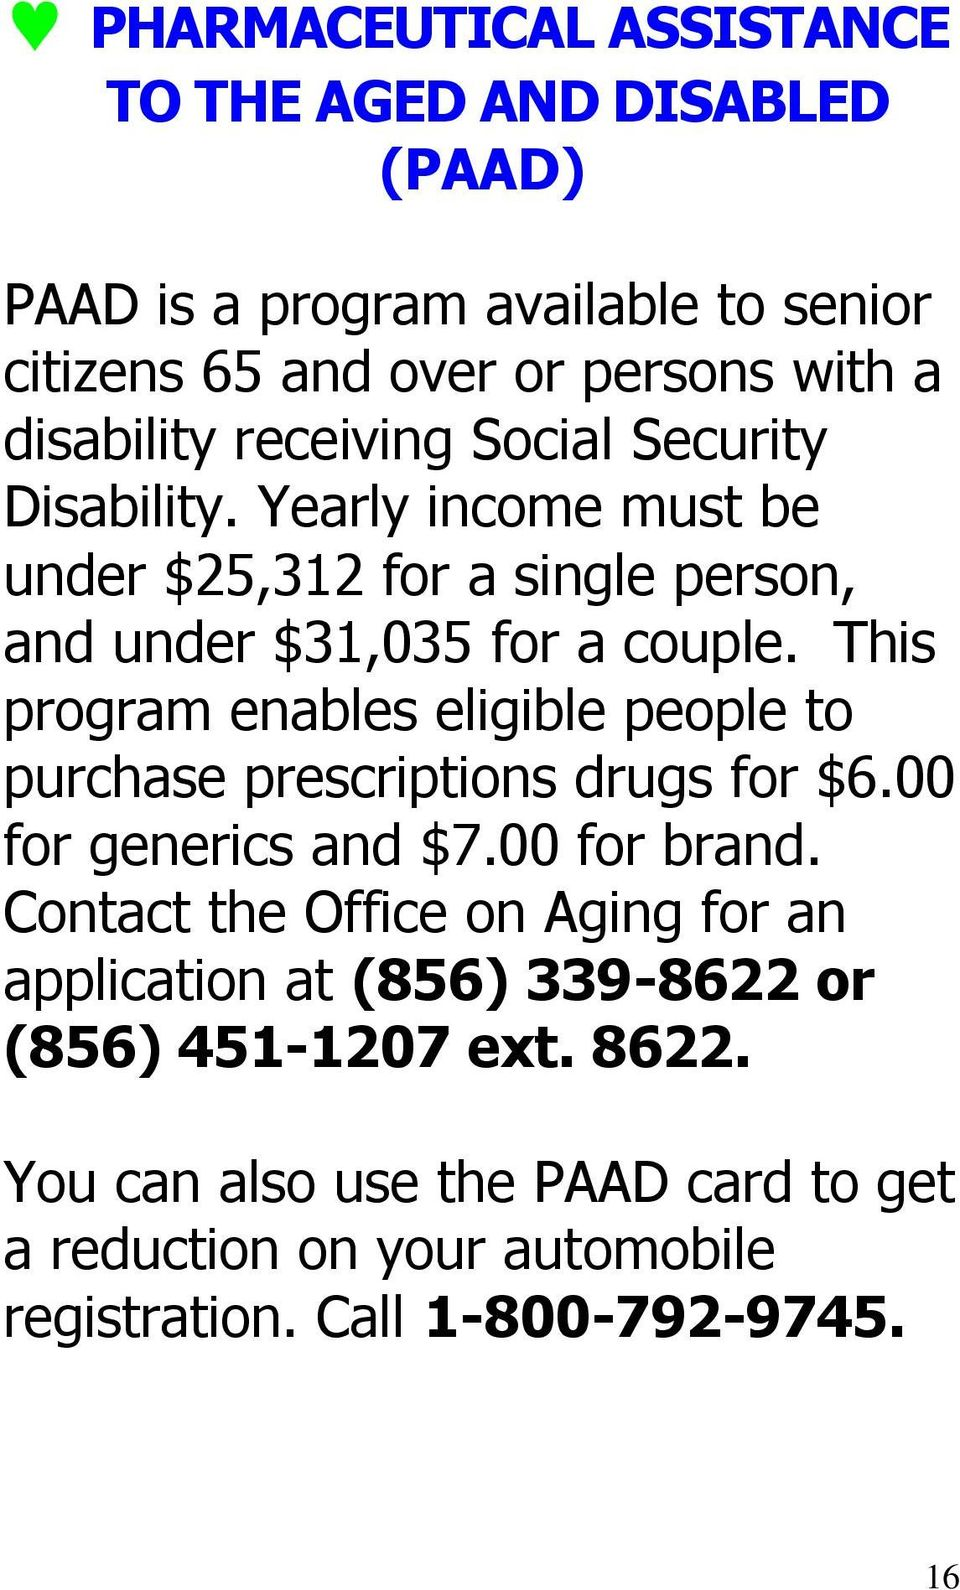 This program enables eligible people to purchase prescriptions drugs for $6.00 for generics and $7.00 for brand.